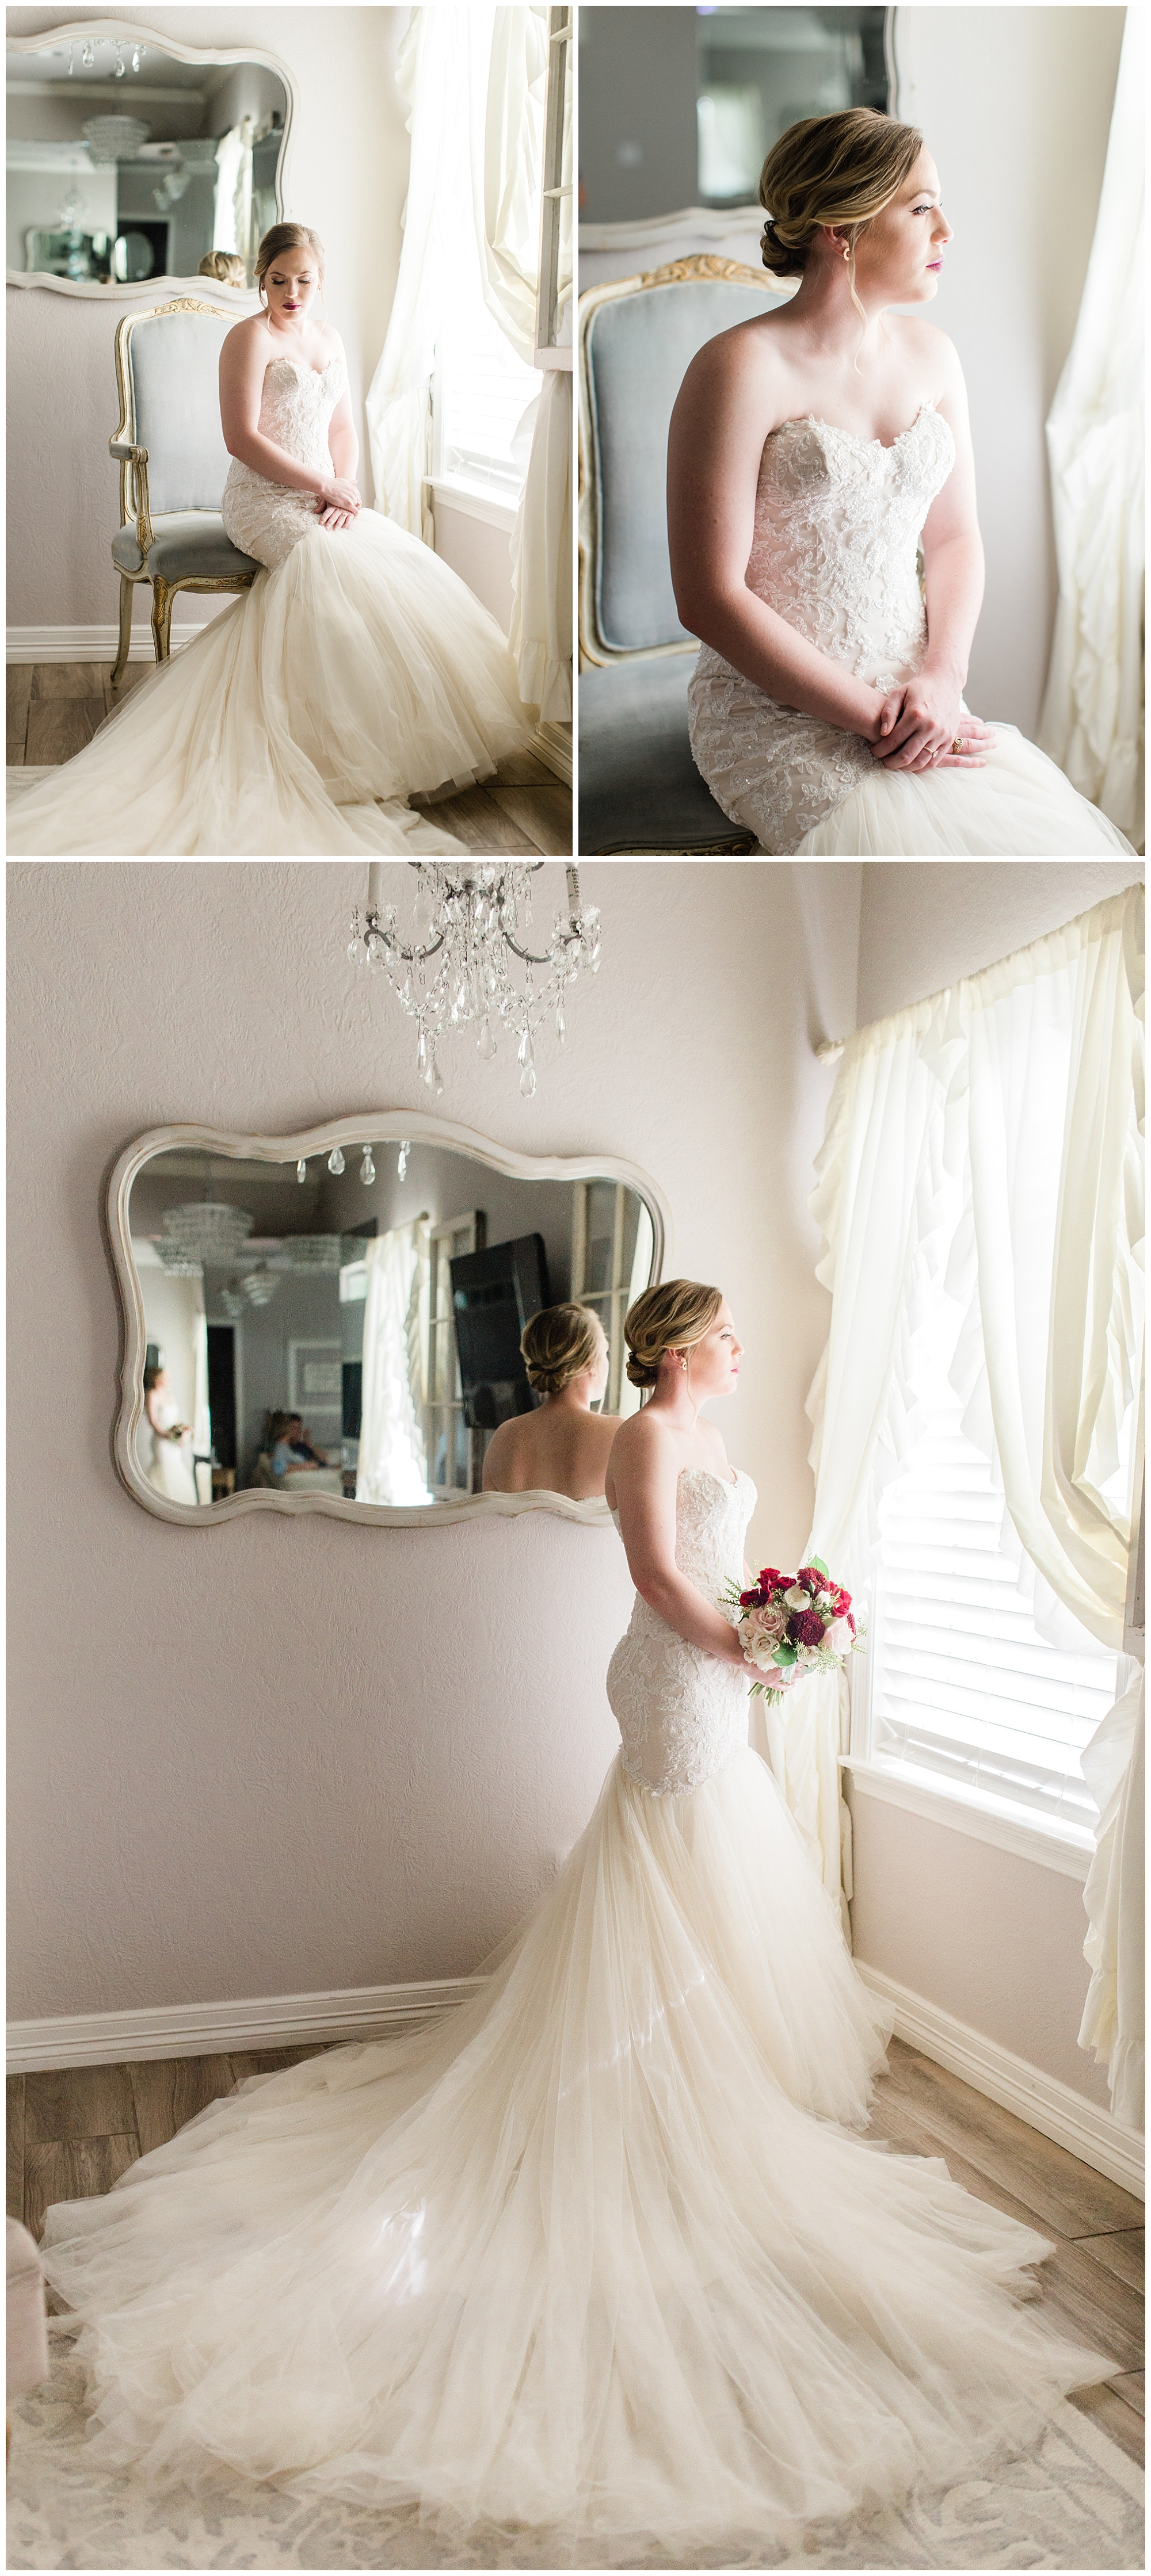 Peach_Creek_Ranch_Bridal_Session_0002.jpg